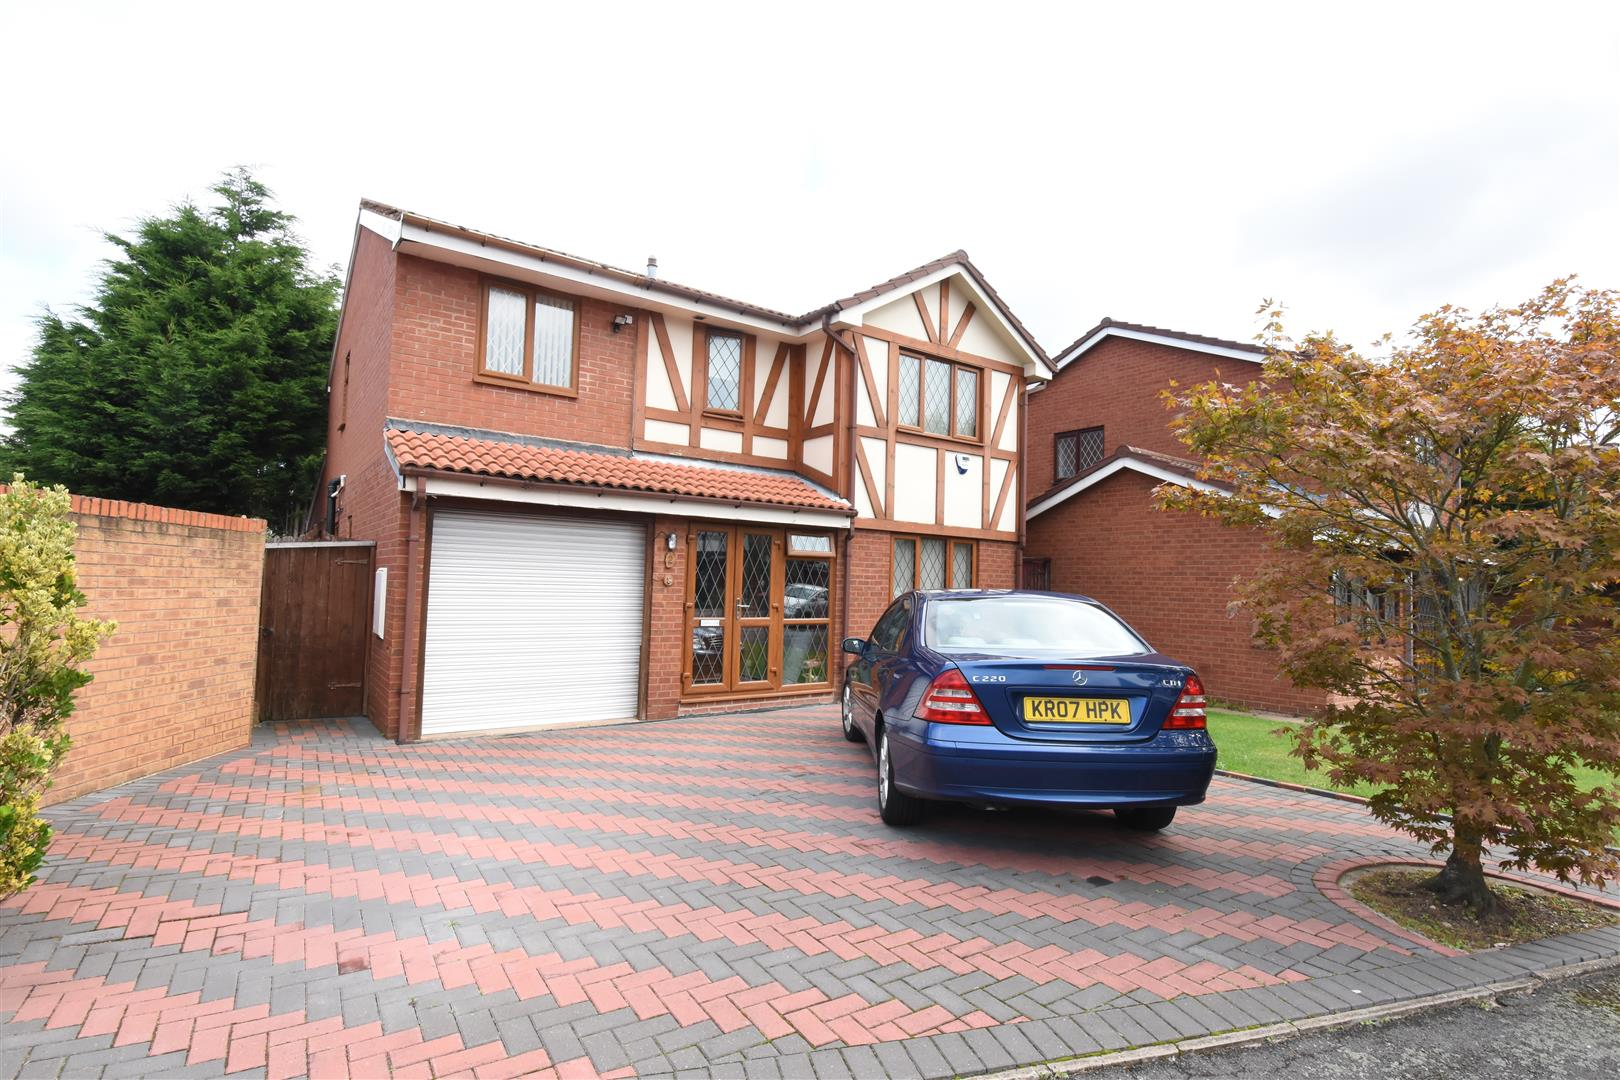 5 bed house for sale in Johnson Close, Ward End, Birmingham - Property Image 1